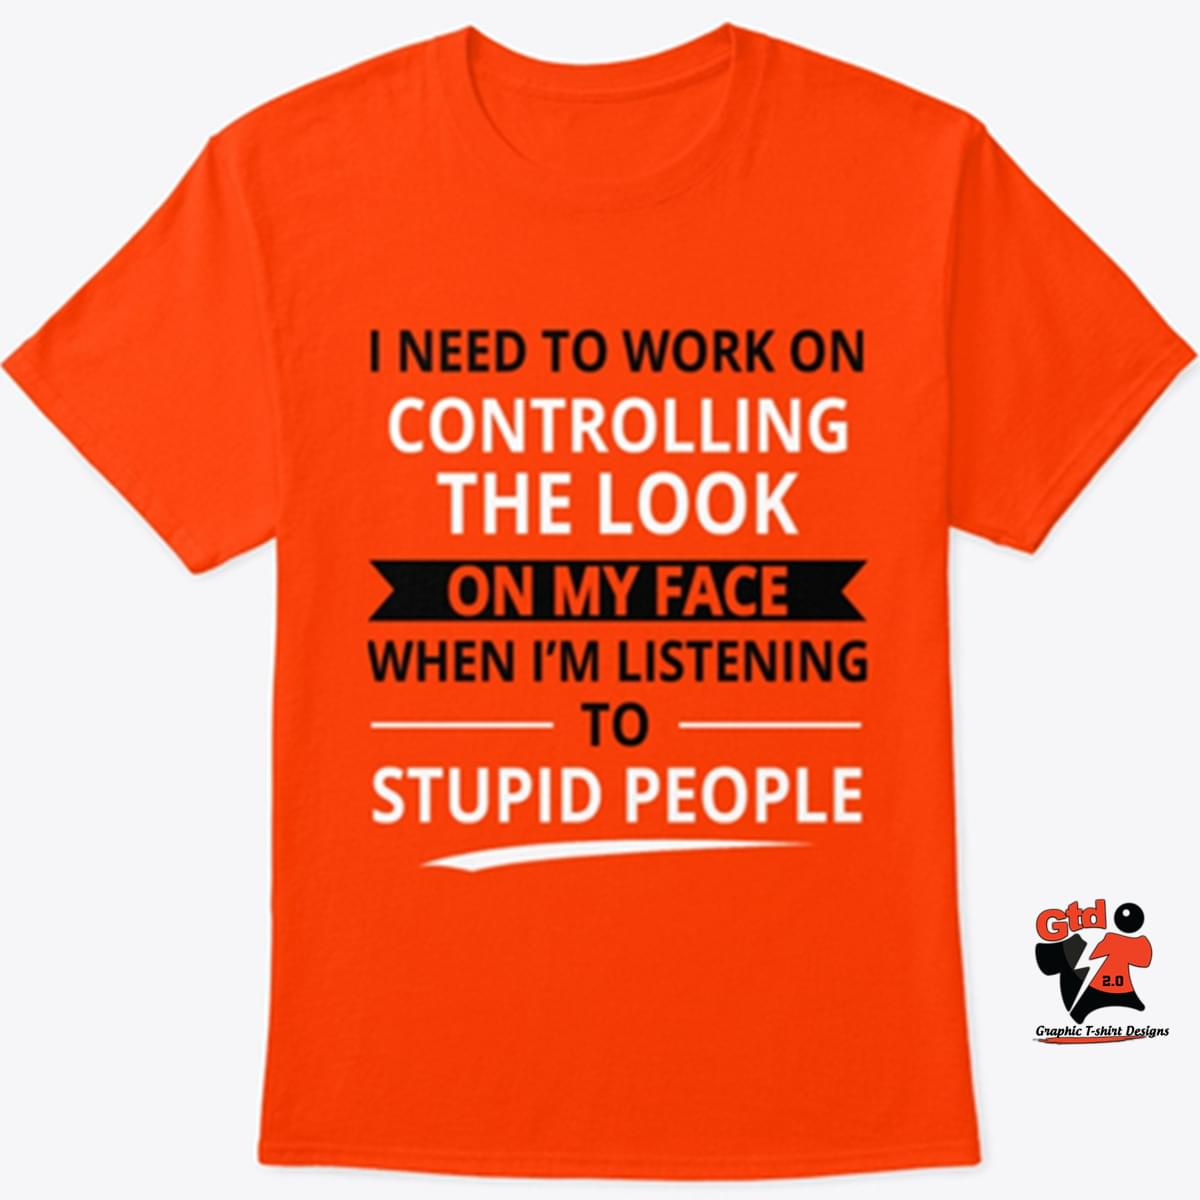 I Need To Work On Controlling The Look On My Face When Im Listening To Stupid People cotton t-shirt Hoodie Mug